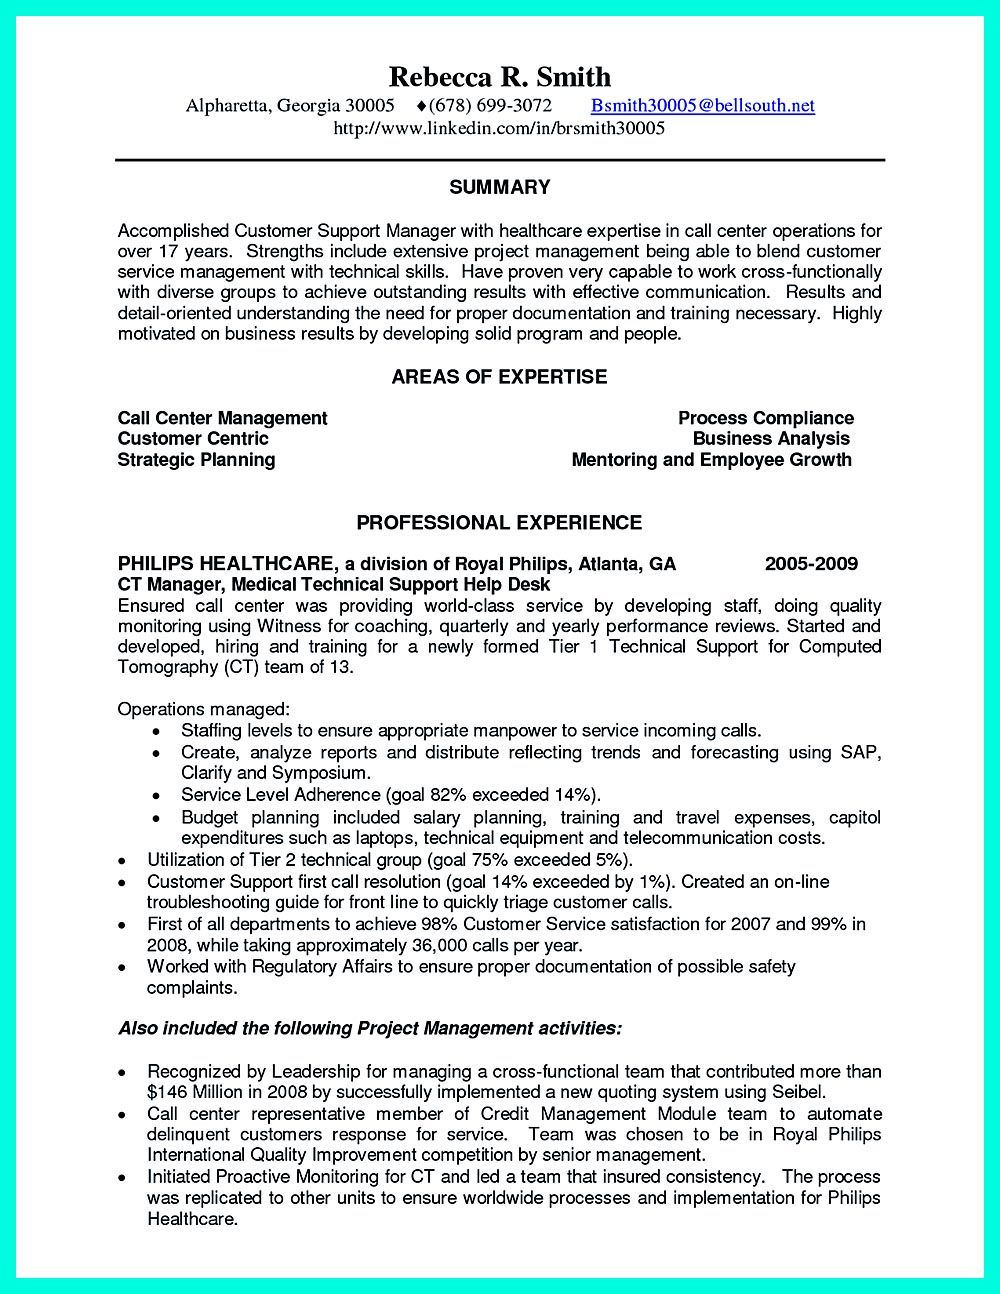 Kellogg Resume Template - Pin On Resume Sample Template and format Pinterest